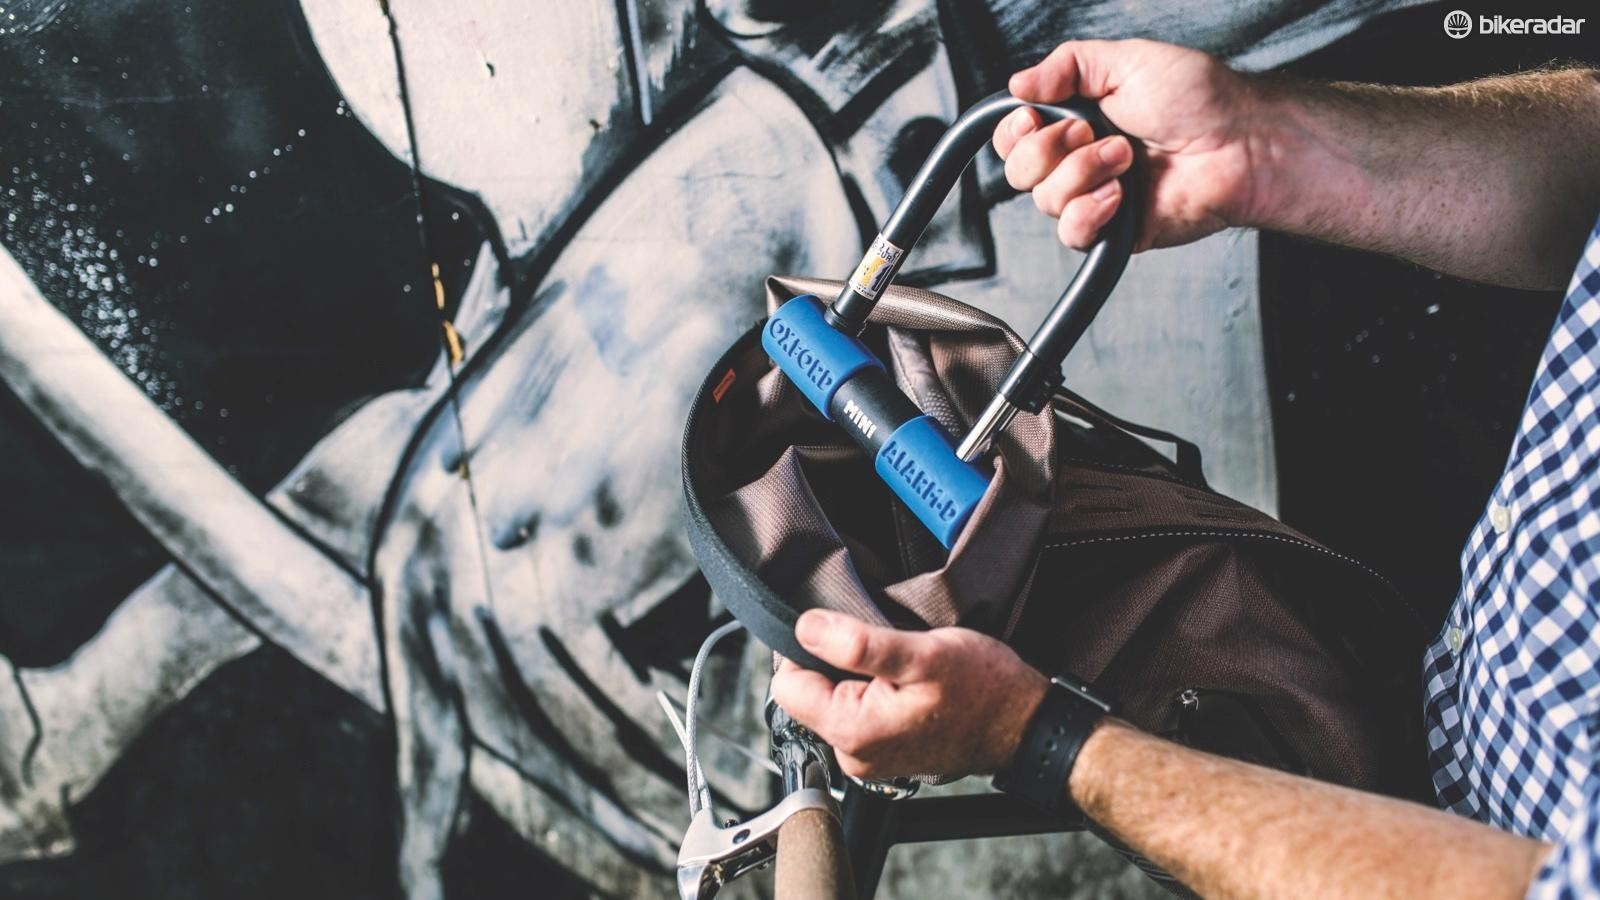 Consider using a D-lock as well as a decent cable lock